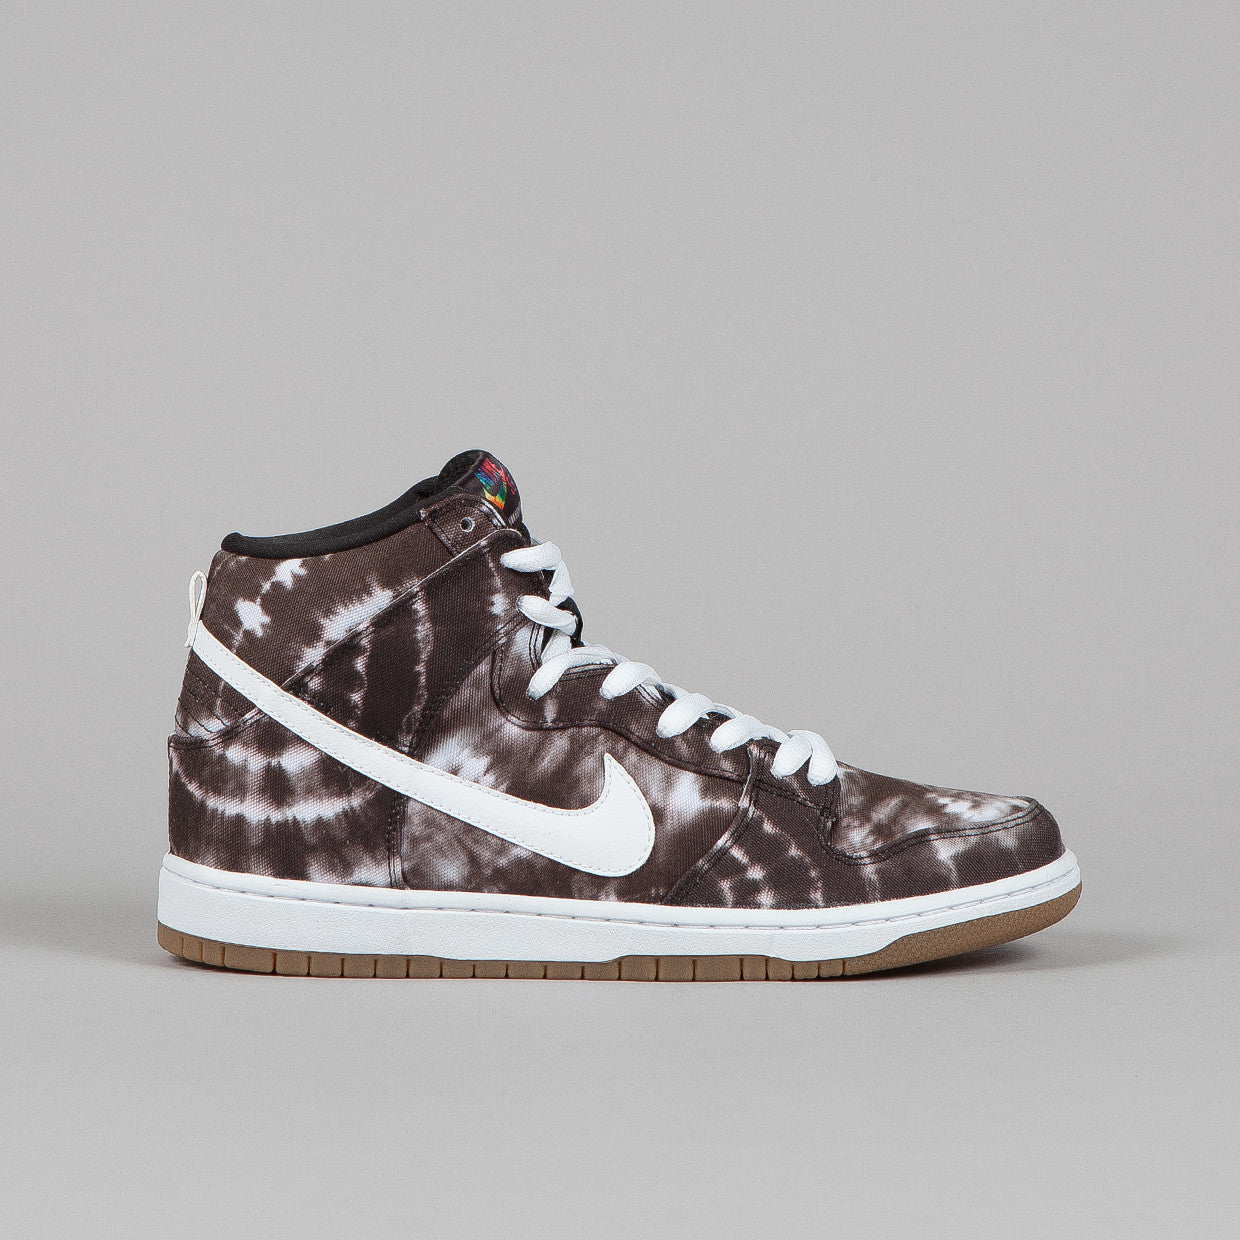 Nike SB Dunk High PR Black / White